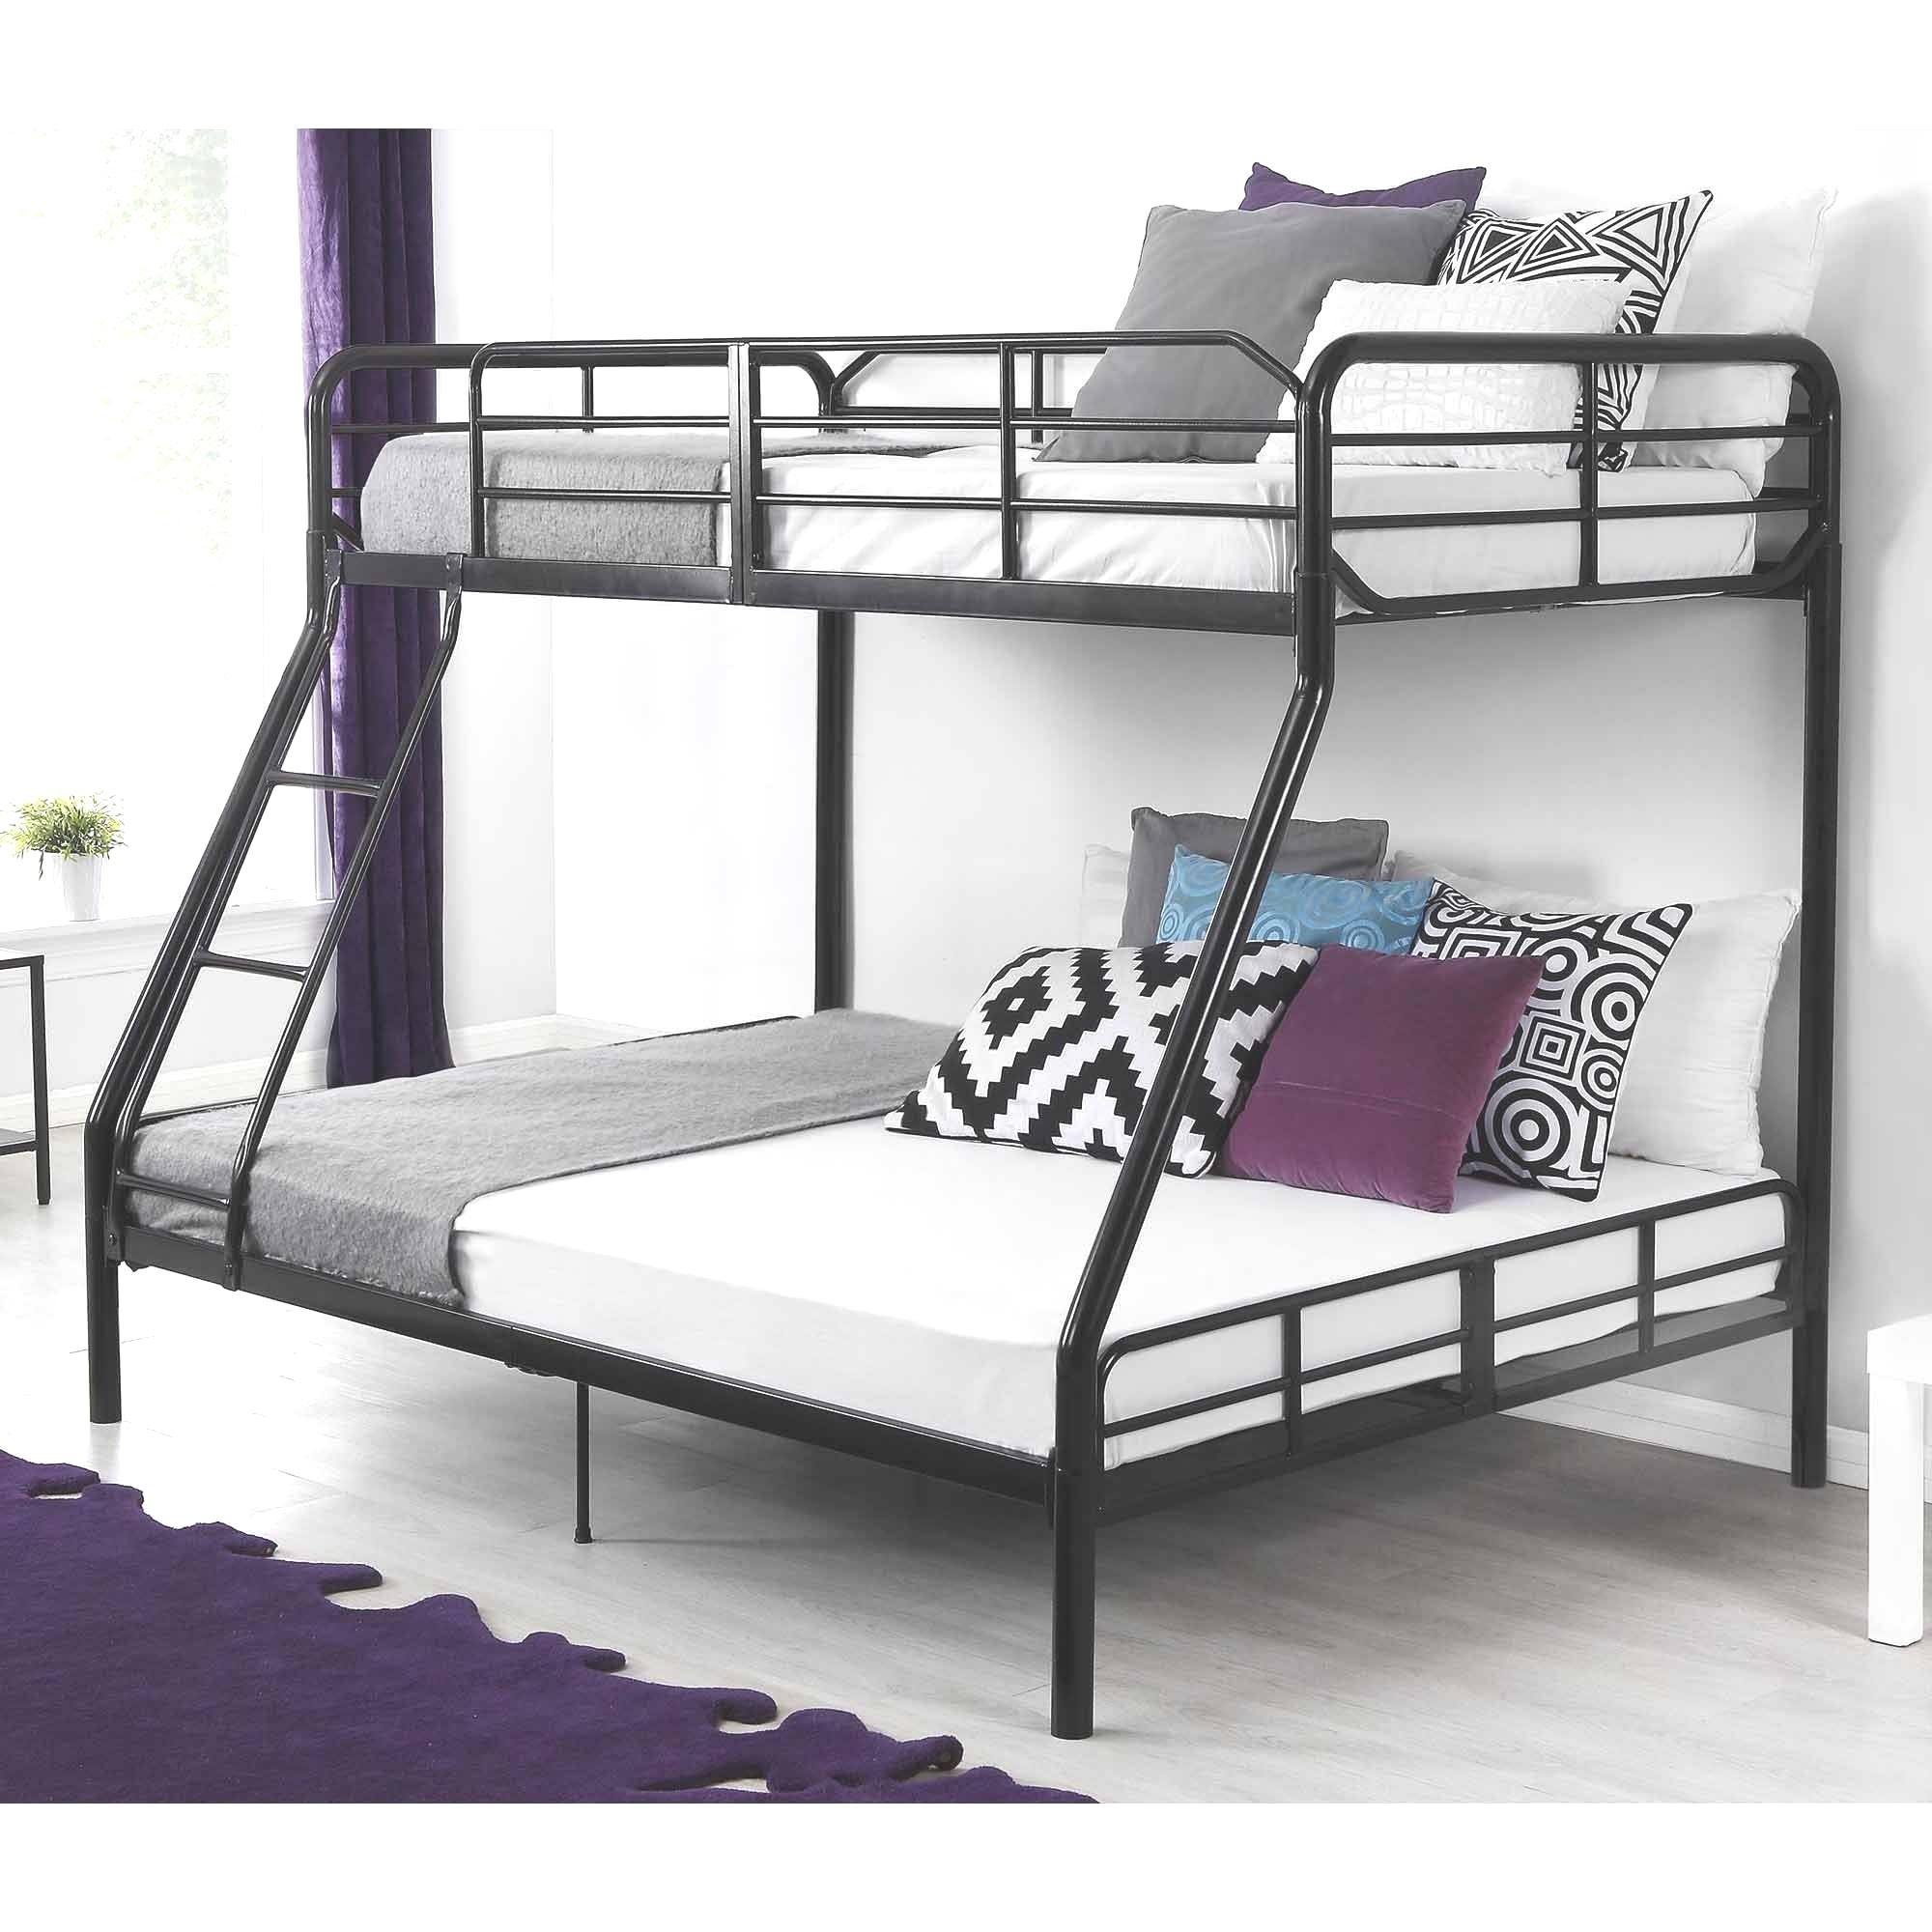 Bunk Beds Acme 10170 Allentown Bunk Bed Assembly Instructions